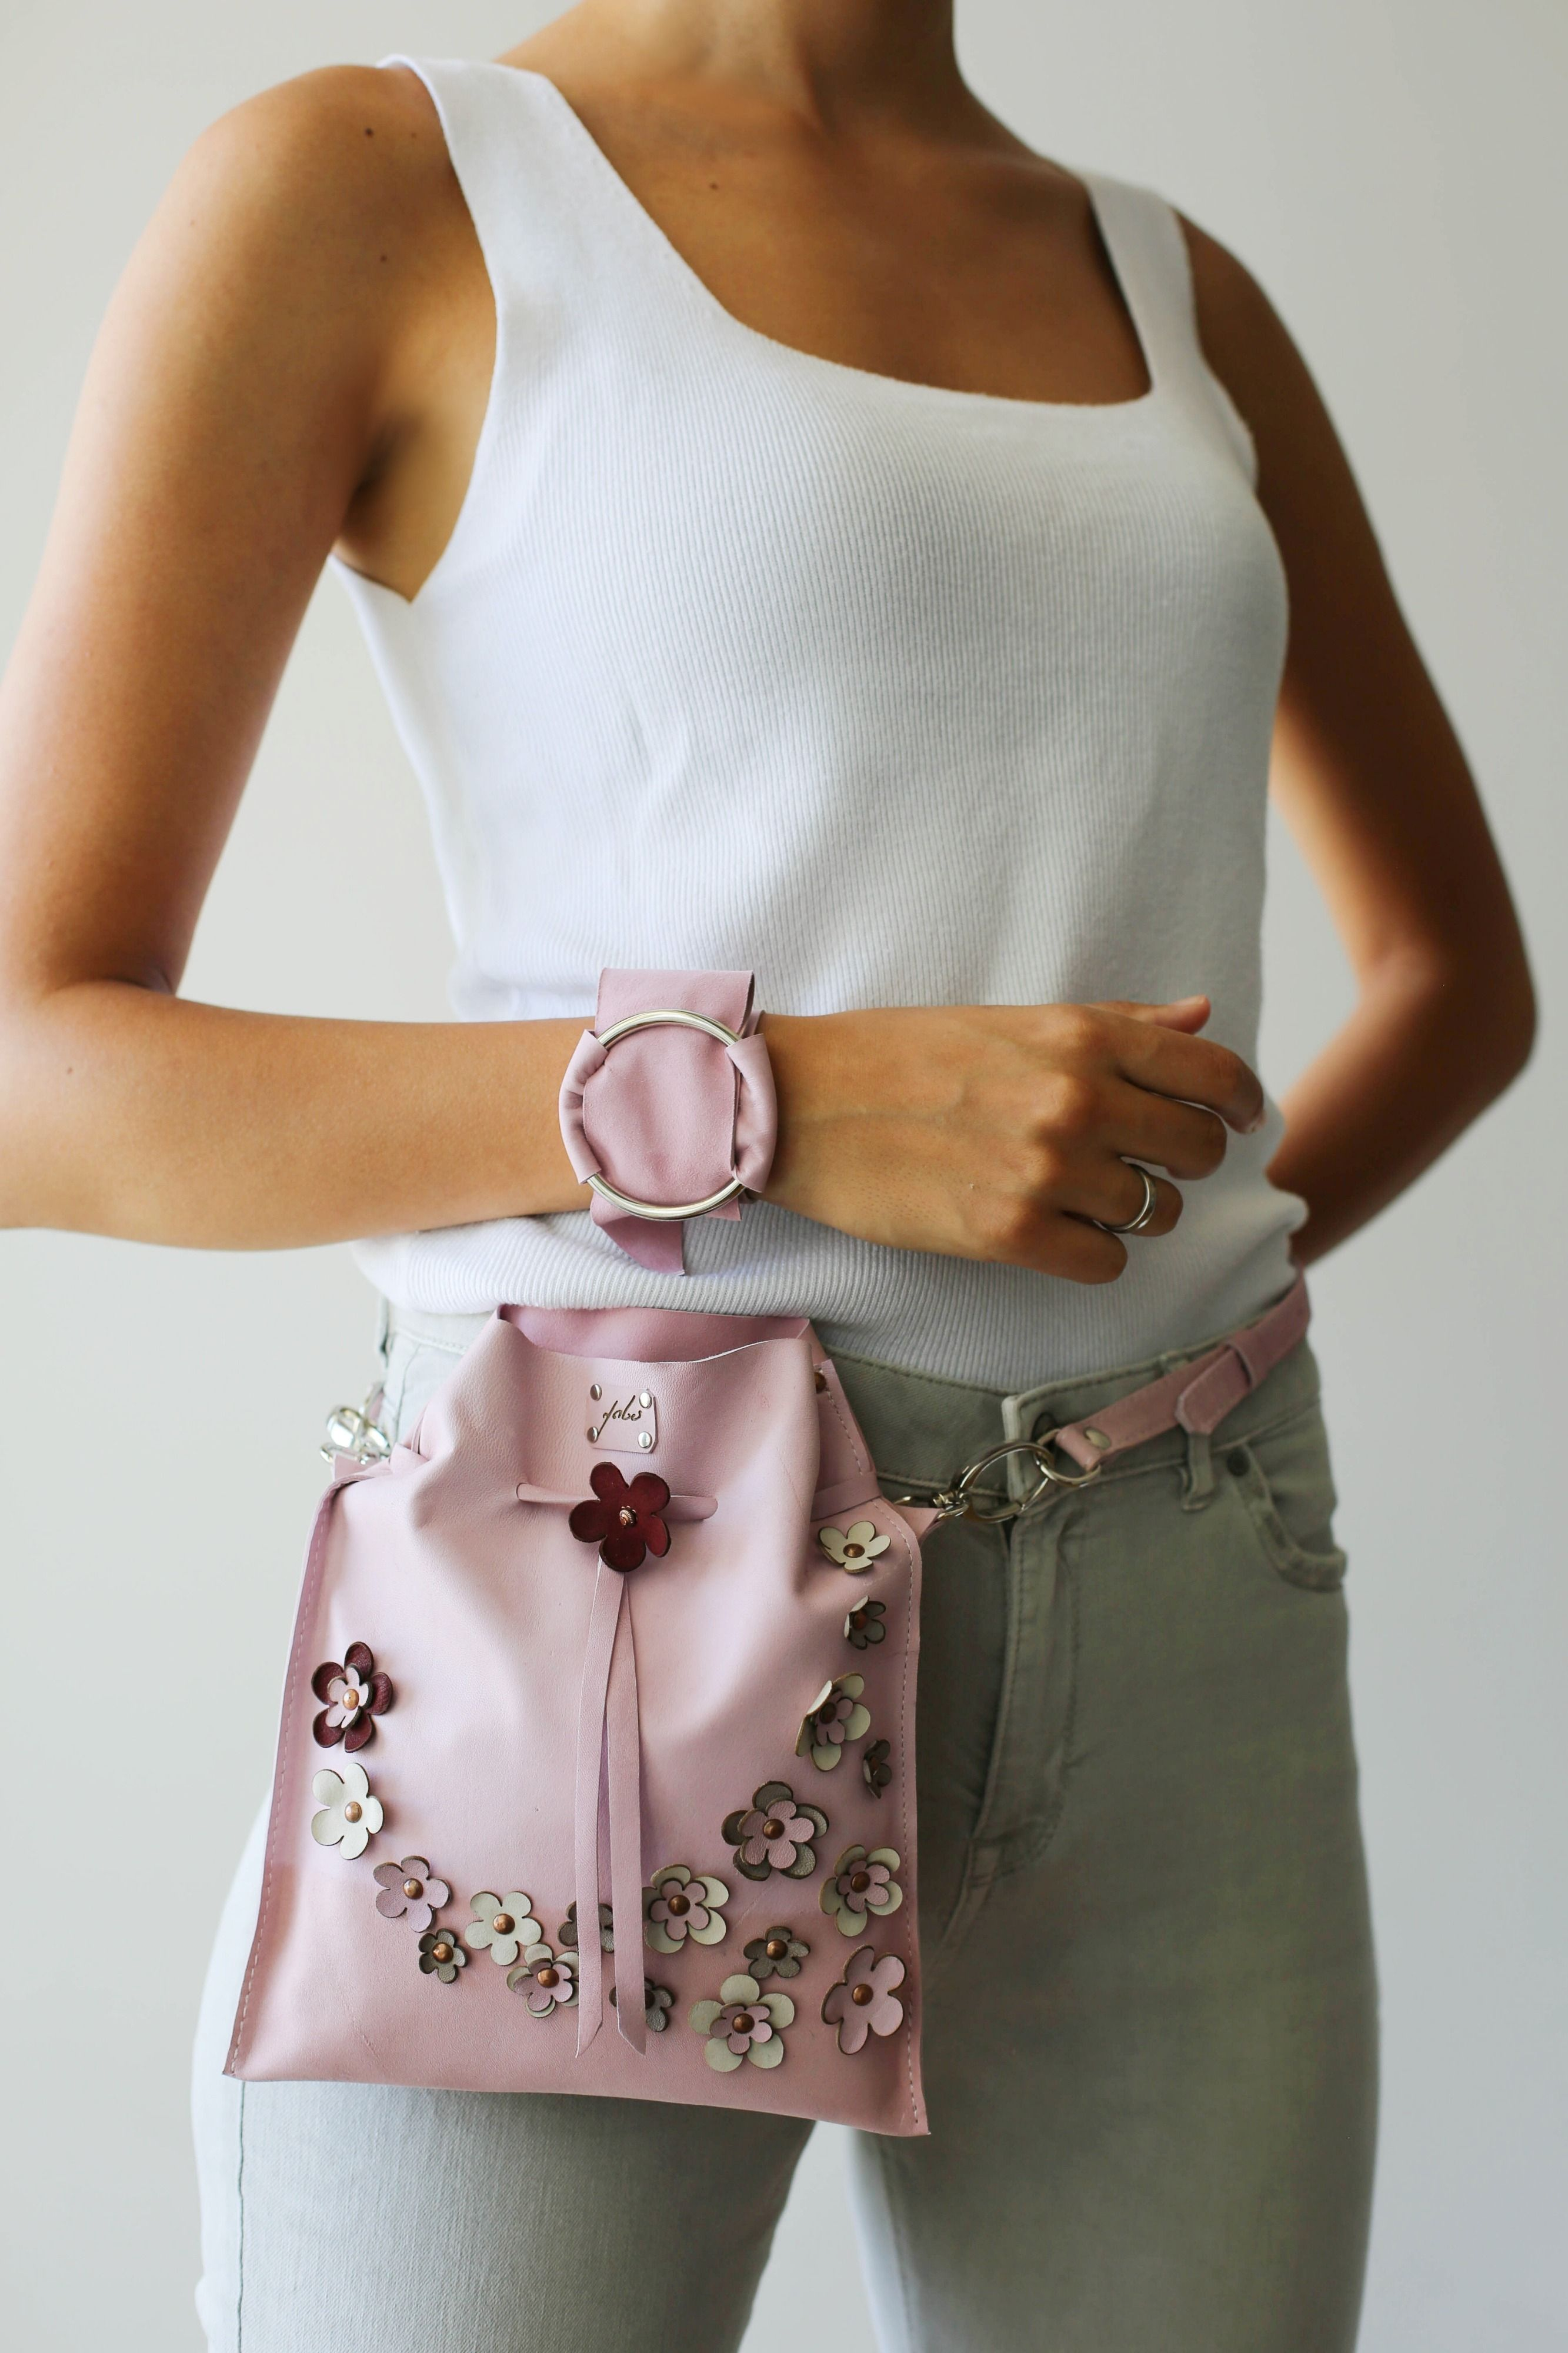 Pink Florals, Leather Bag, Pink Bag, Leather Purse, Leather Pouch, Floral, Pink Rose, Leather Handbag, Pink Floral Bag, Small Leather Pouch